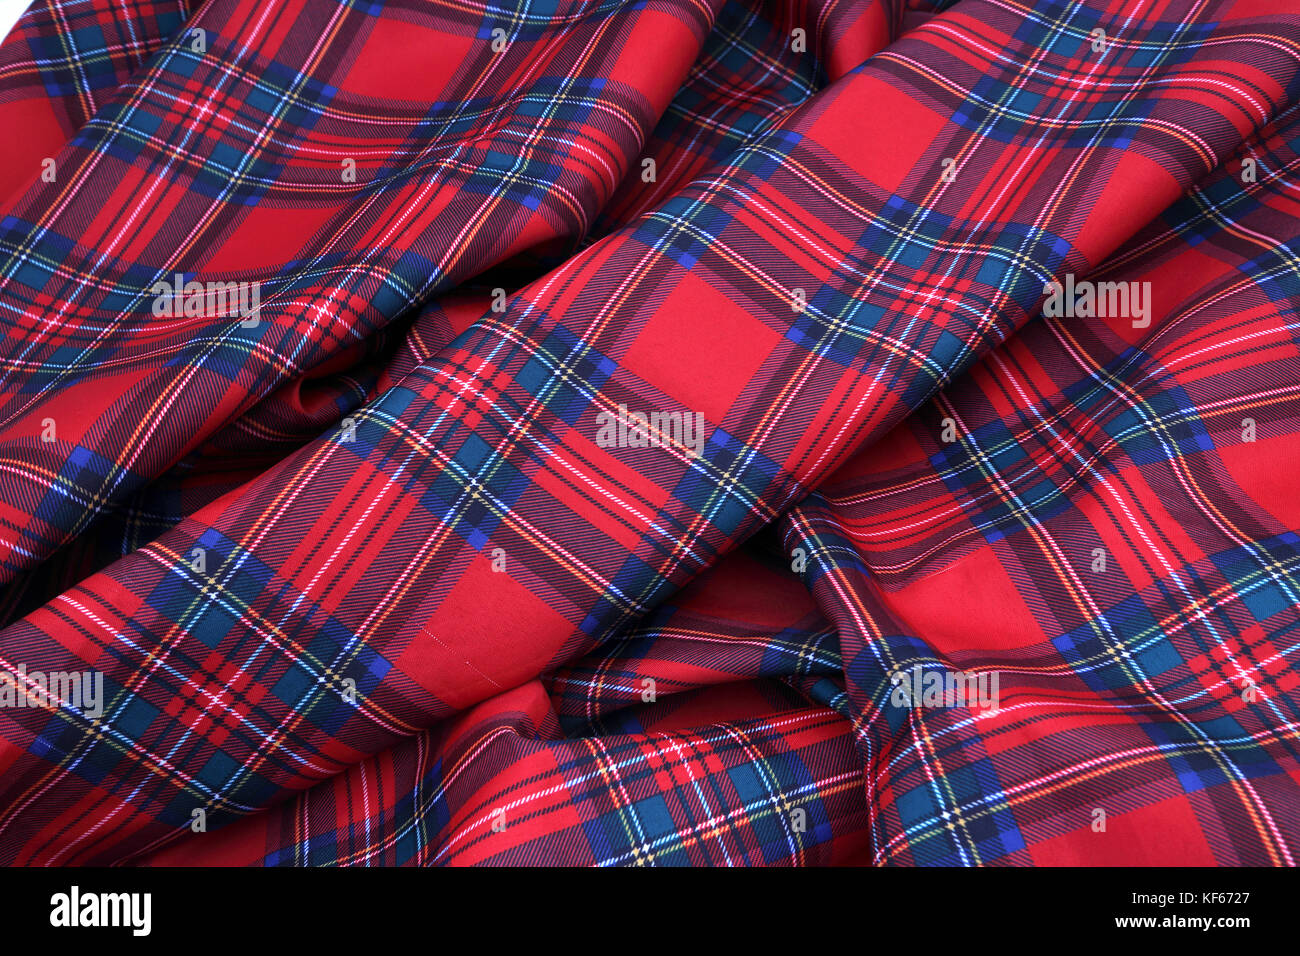 Red And Blue Tartan Tablecloth   Stock Image